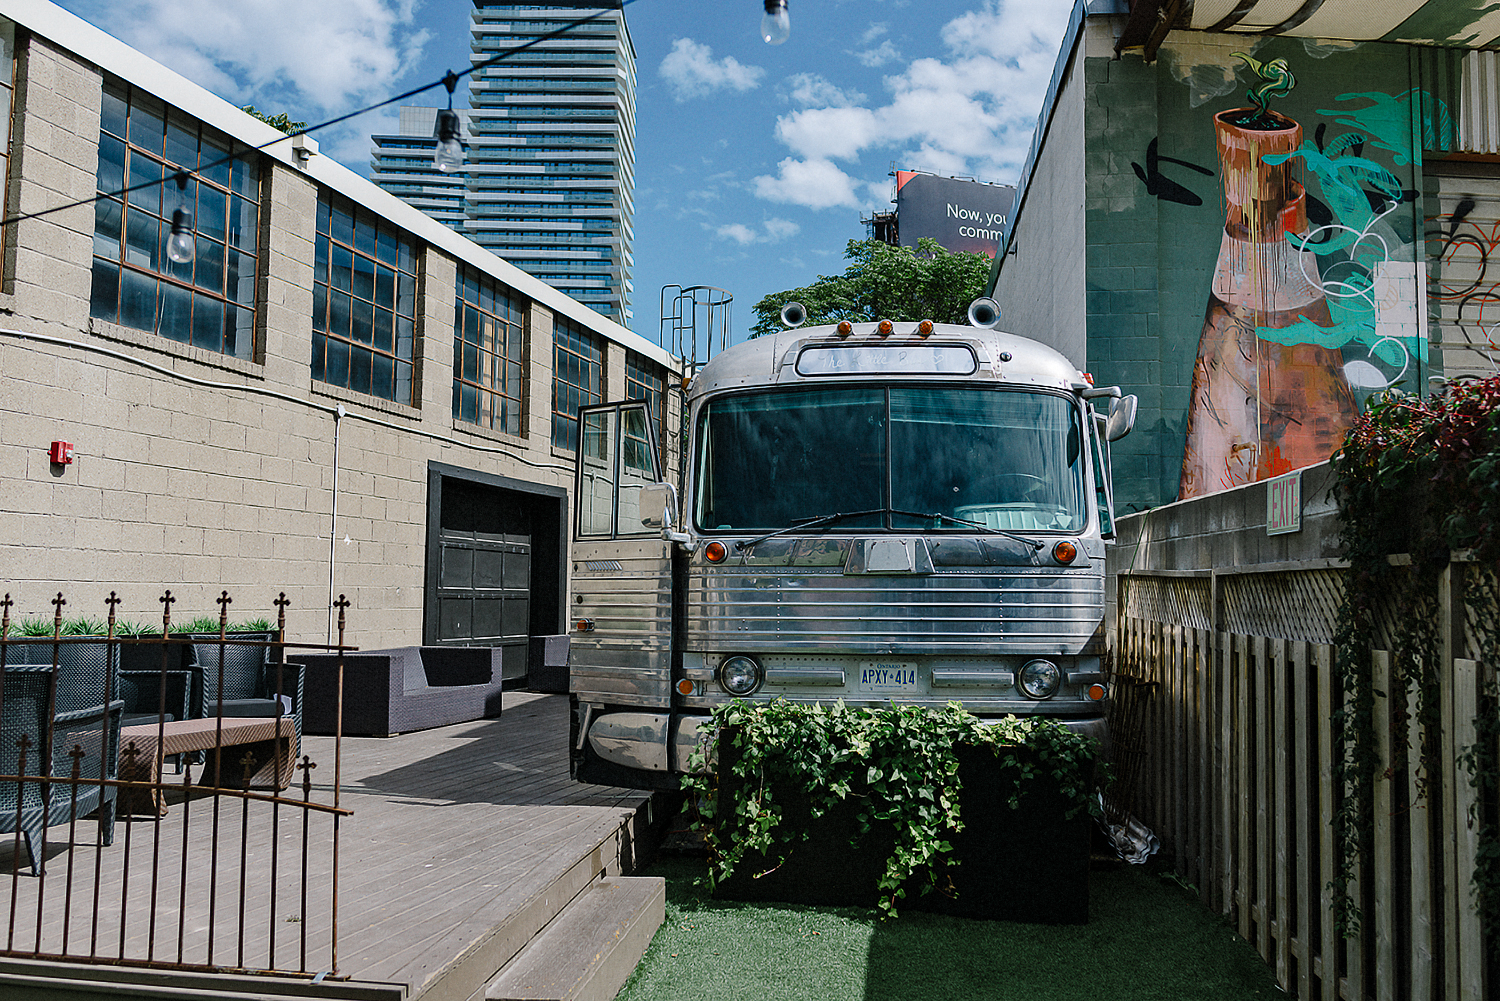 Best-Toronto-Wedding-Photographers-3b-Photography-Brian-B-Bettencourt-Alternative-Photojournalistic-Documentary-Wedding-Photography-Urban-Wedding-Venue-Detail-Airstream-Bus.jpg